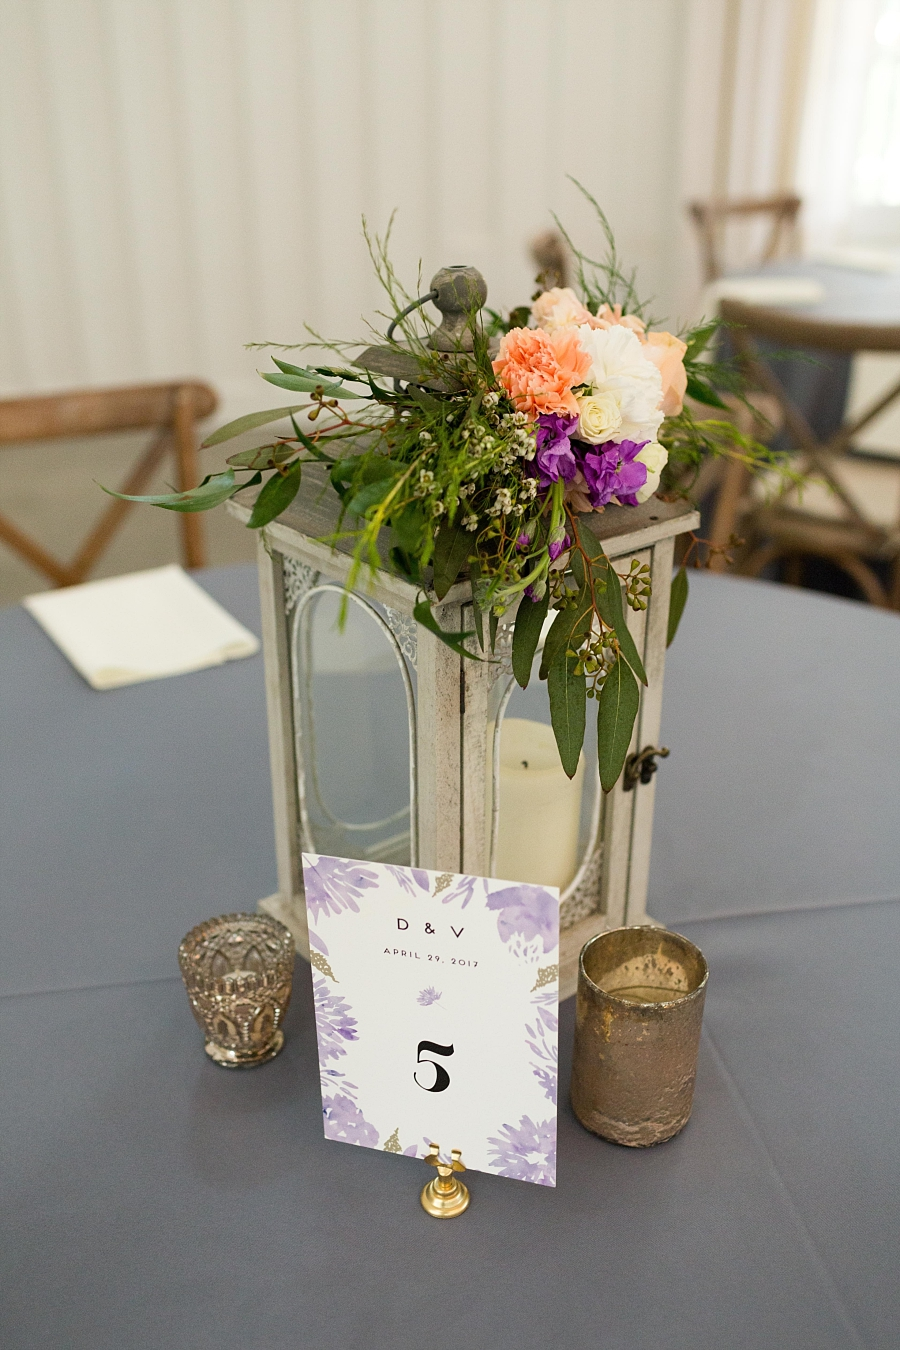 Stacy-Anderson-Photography-The-Farmhouse-Houston-Wedding-Photographer_0039.jpg